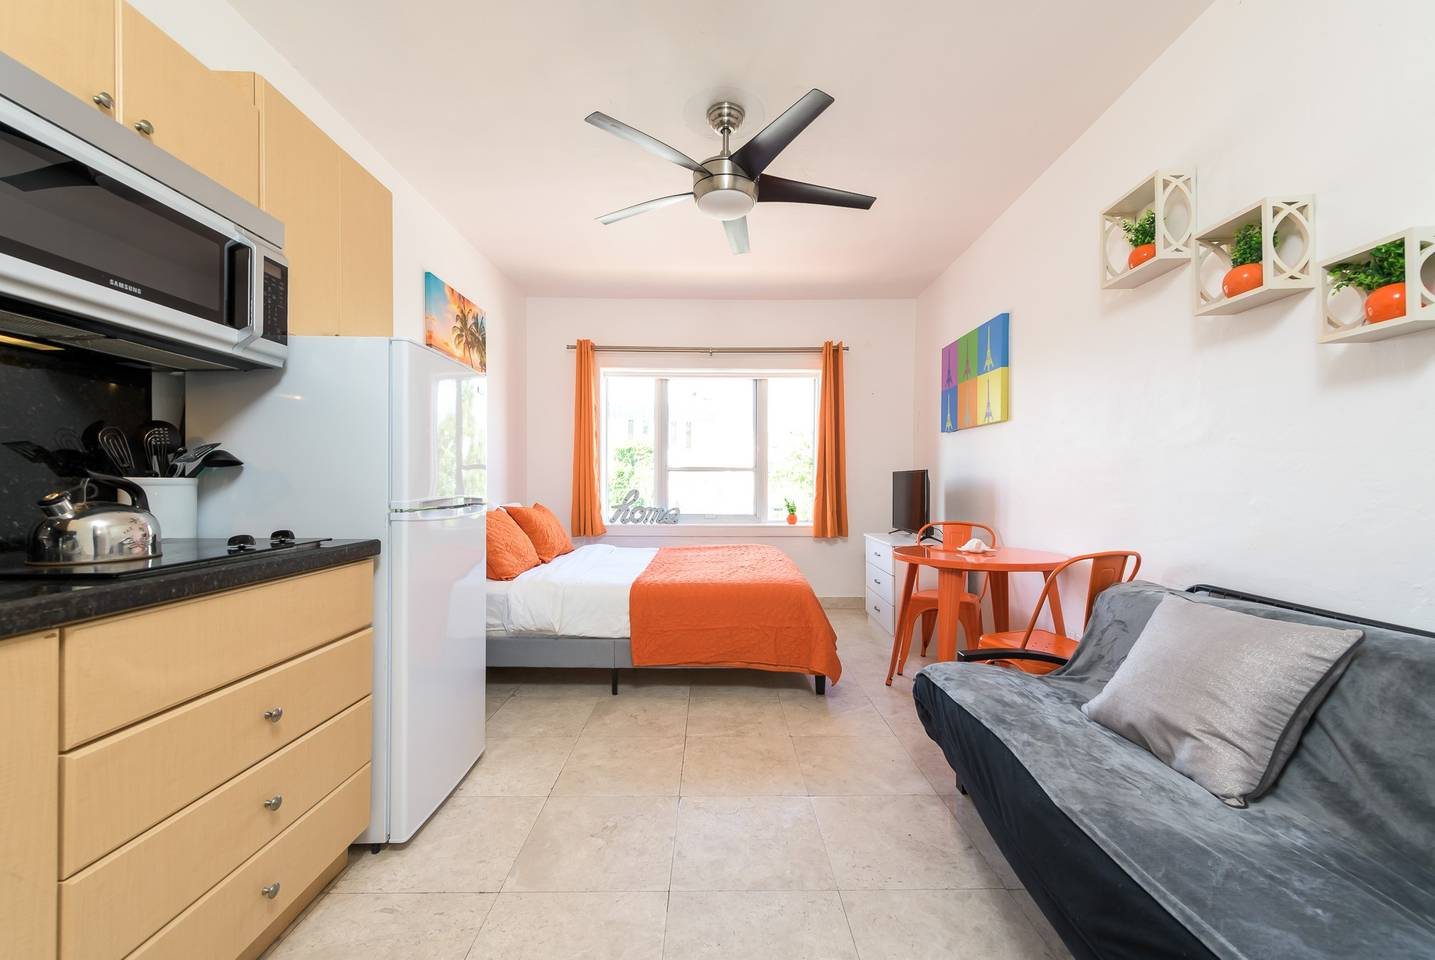 Mantell-Plaza-Studio-with-Pool-2-mins-to-the-Beach-26255680-01